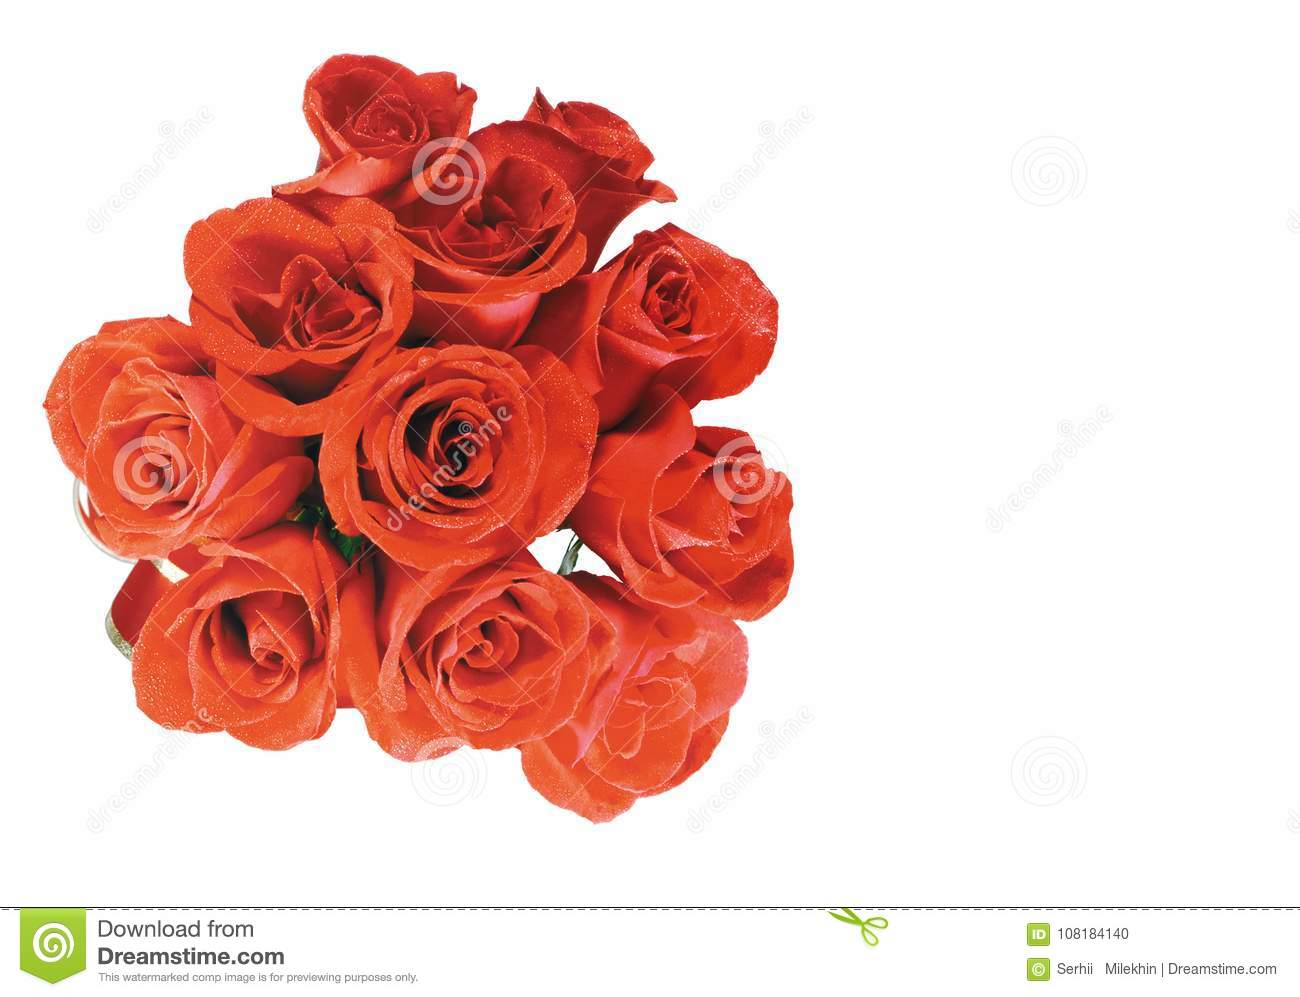 Flowers wall background with amazing roses stock photo image of flowers wall background with amazing roses bouquet izmirmasajfo